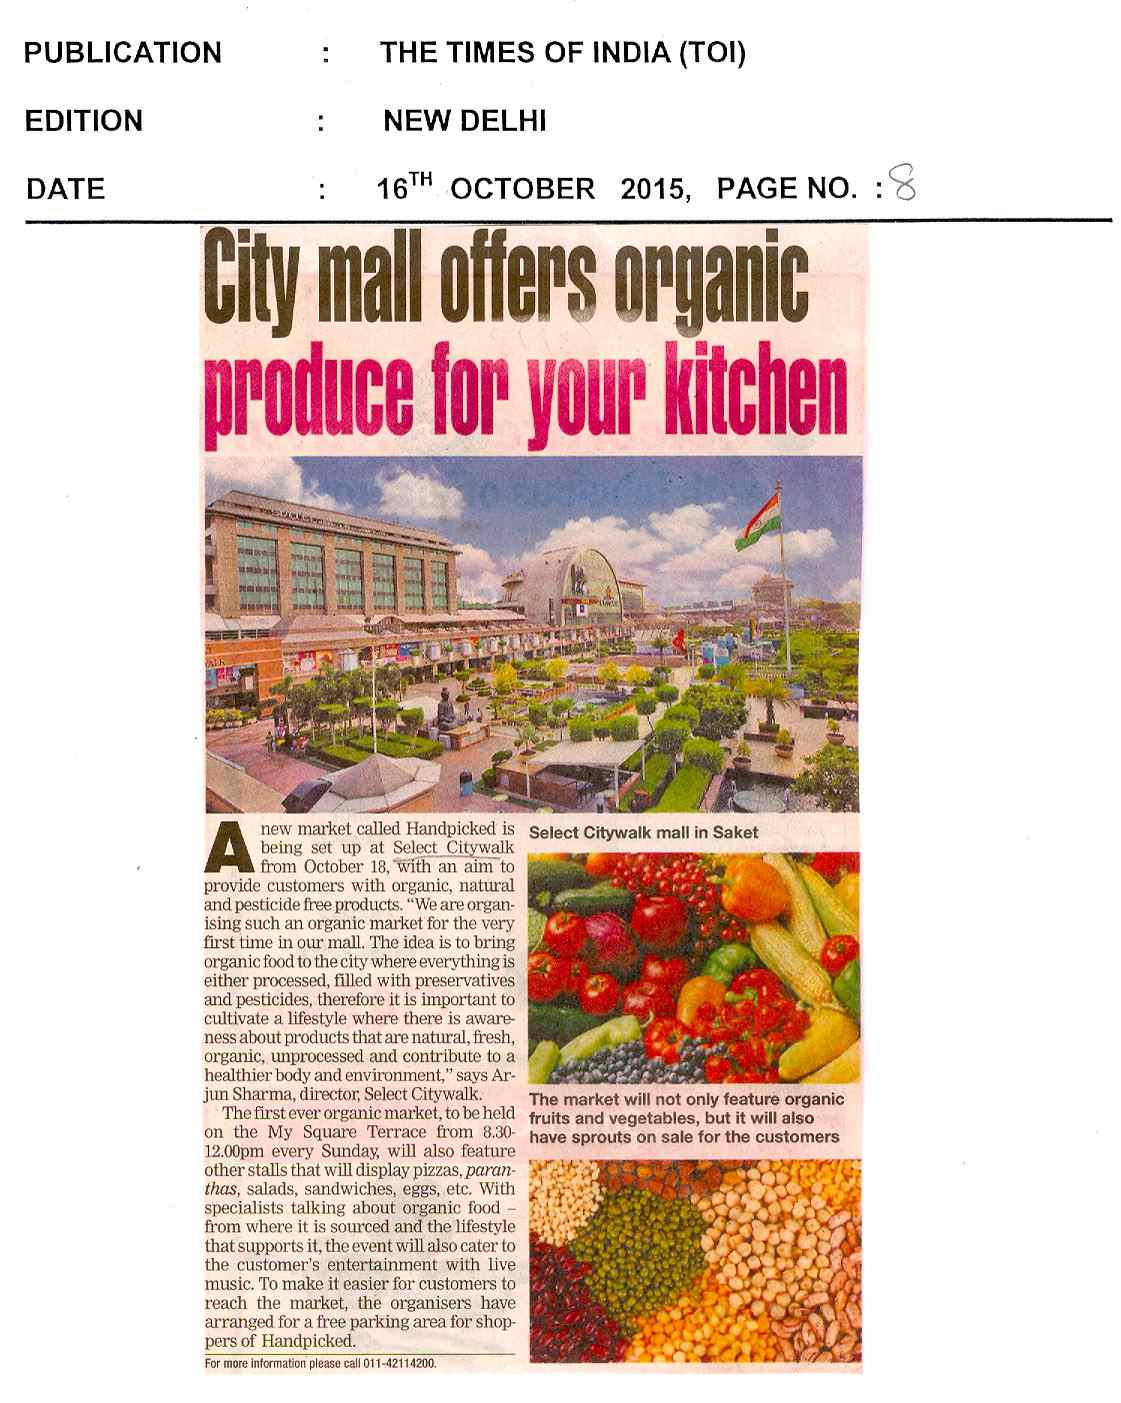 City mall offers organic produce for your kitchen